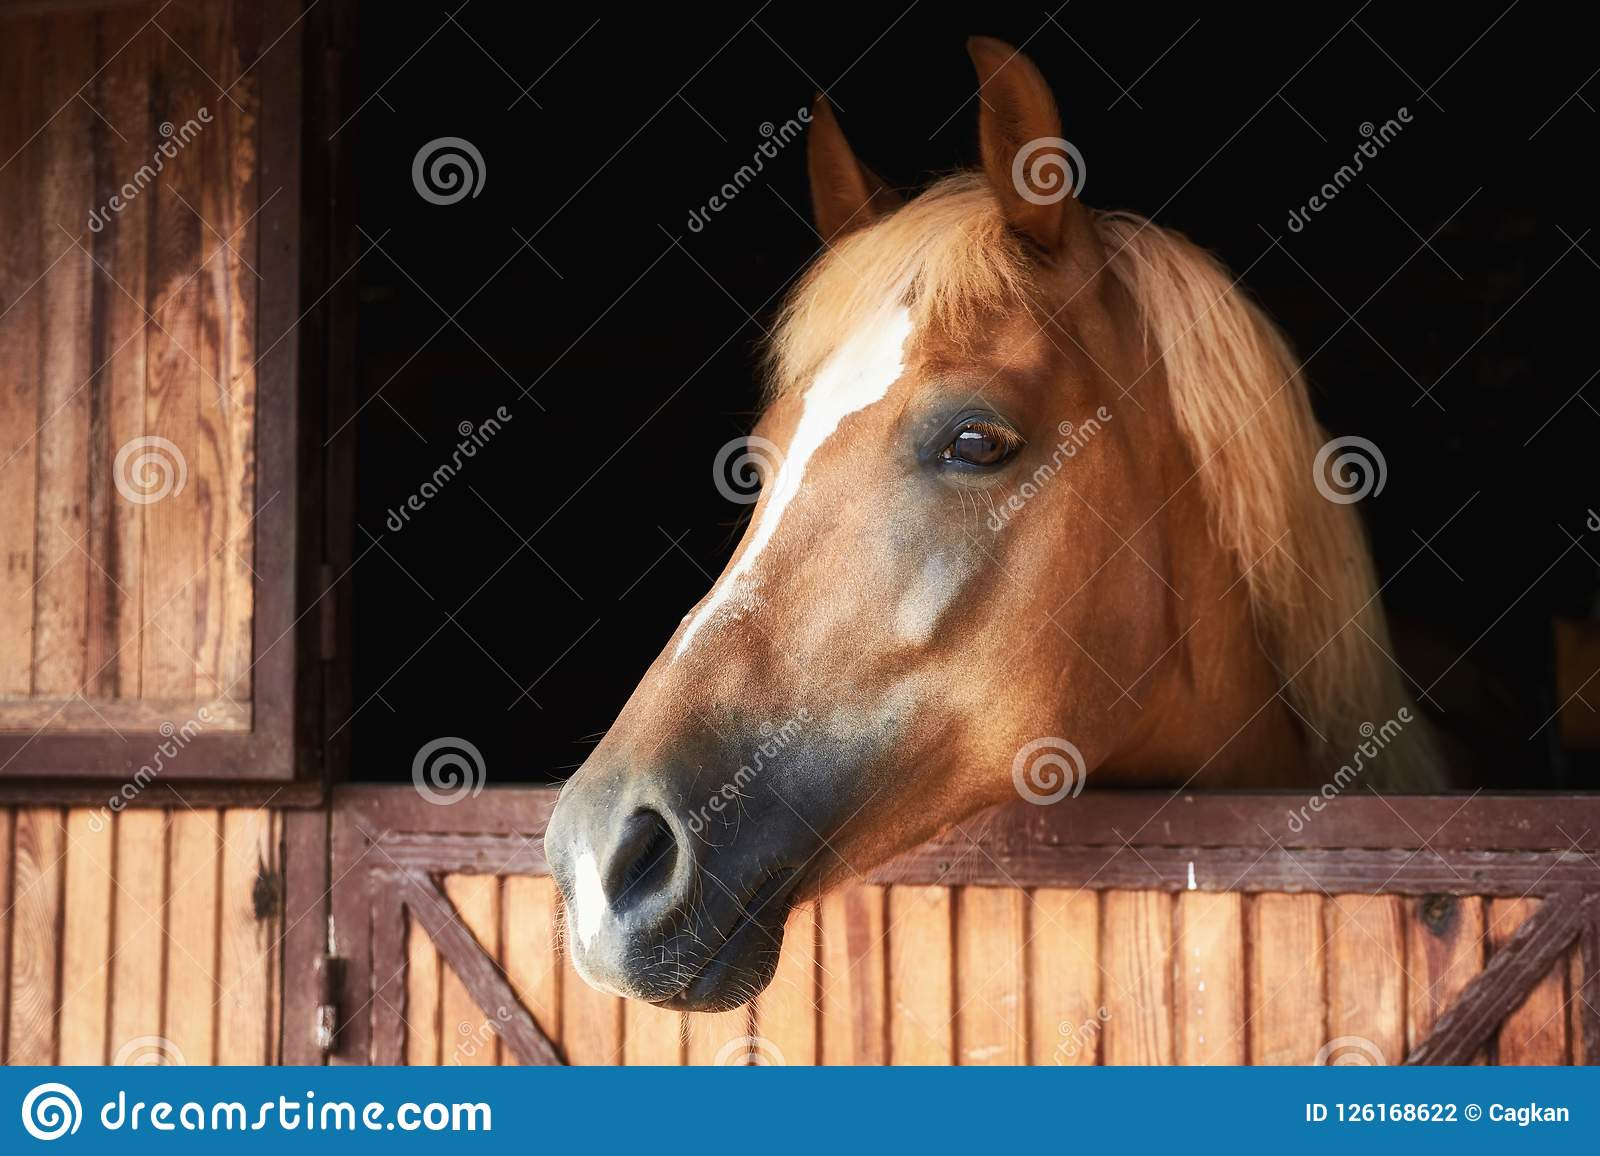 Head Shot Portrait Of A Horse In A Barn Stock Photo Image Of Breed Exterior 126168622